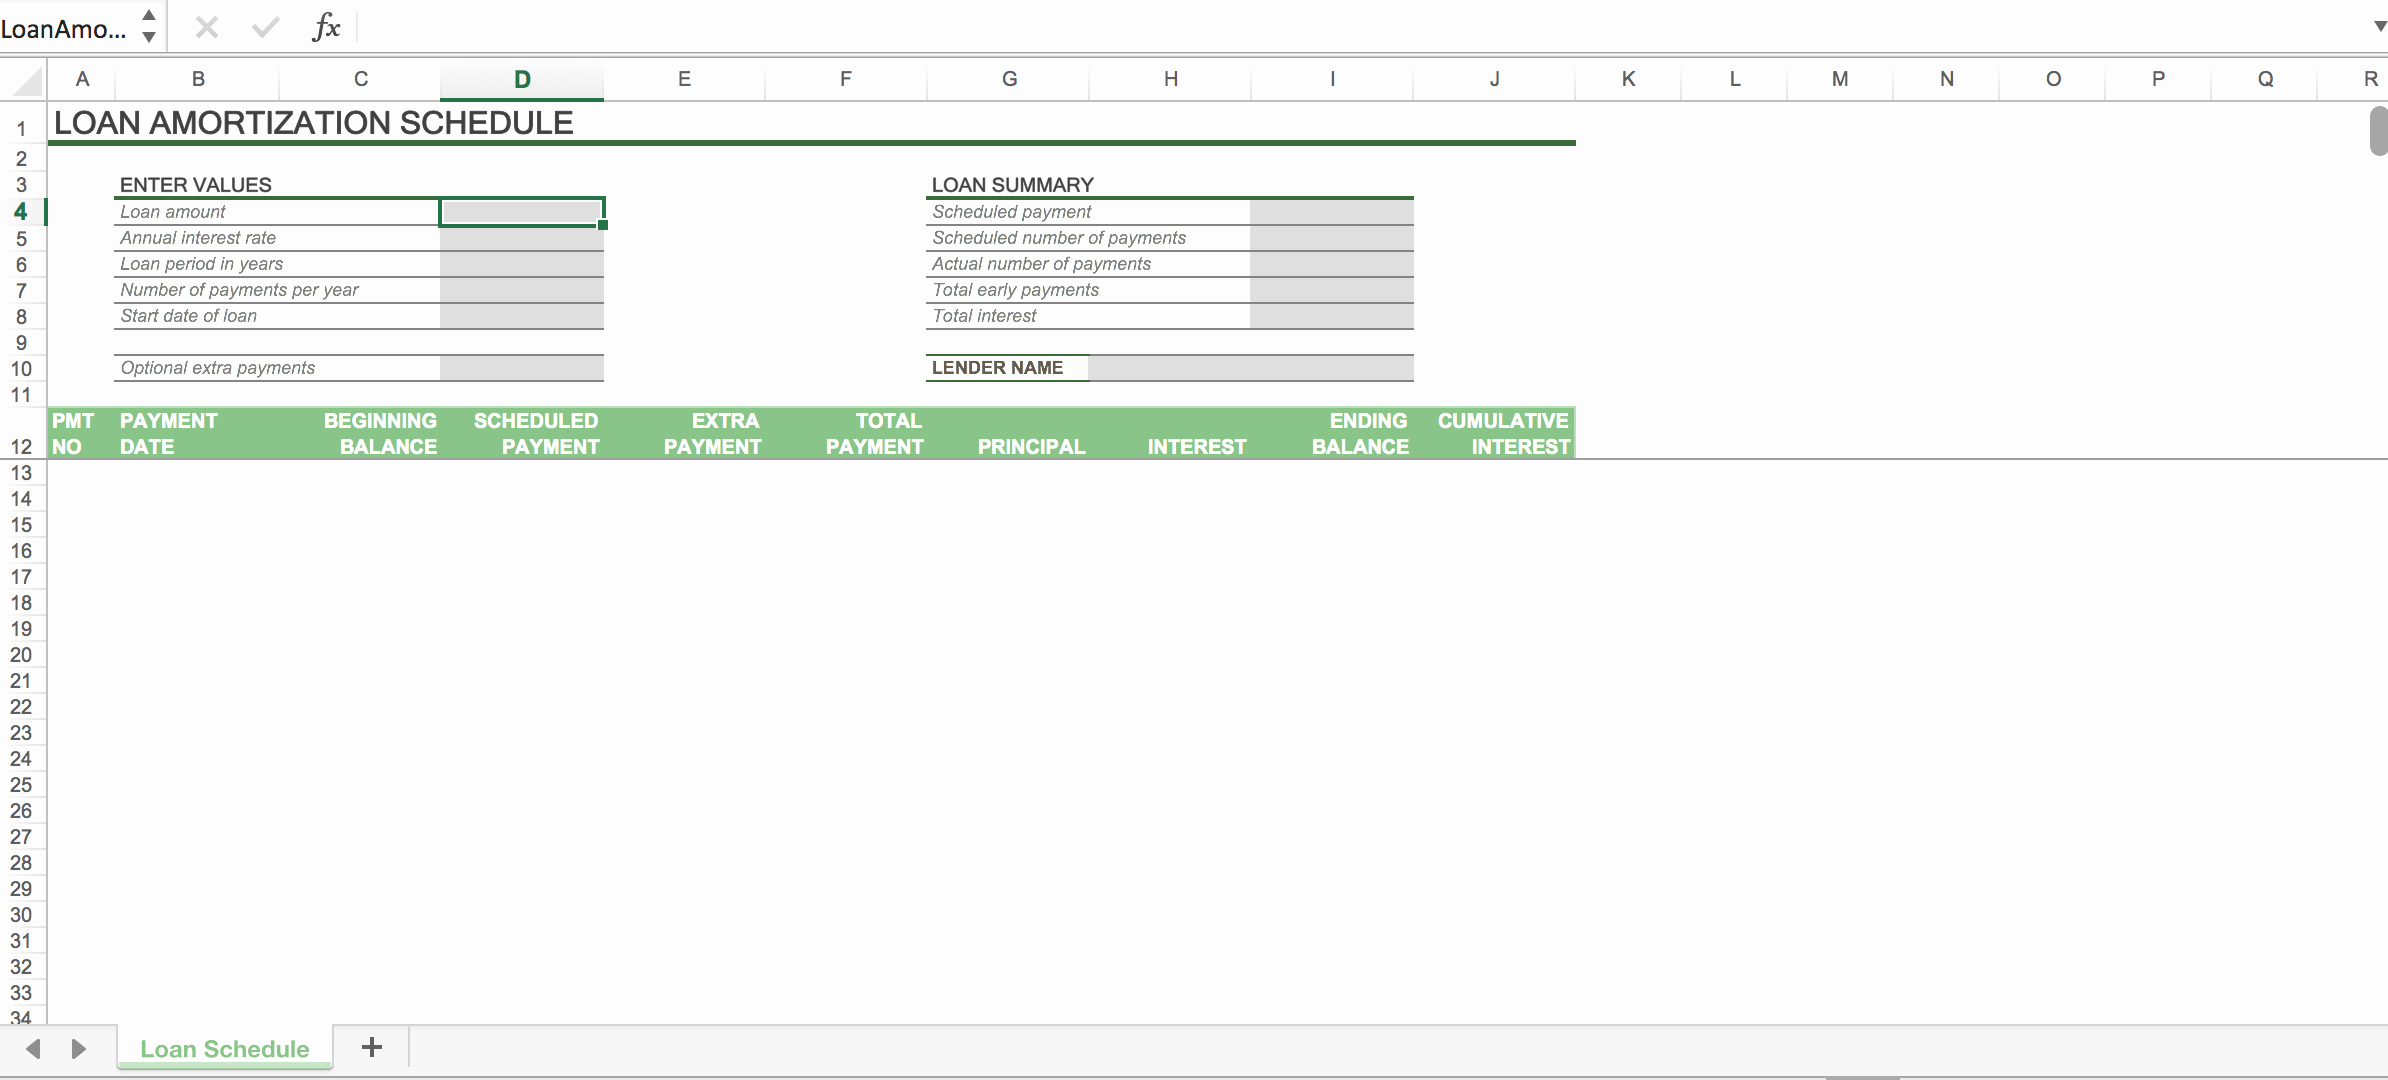 Amortization Table with Balloon Payment New Excel Loan Amortization Schedule with Balloon Payment